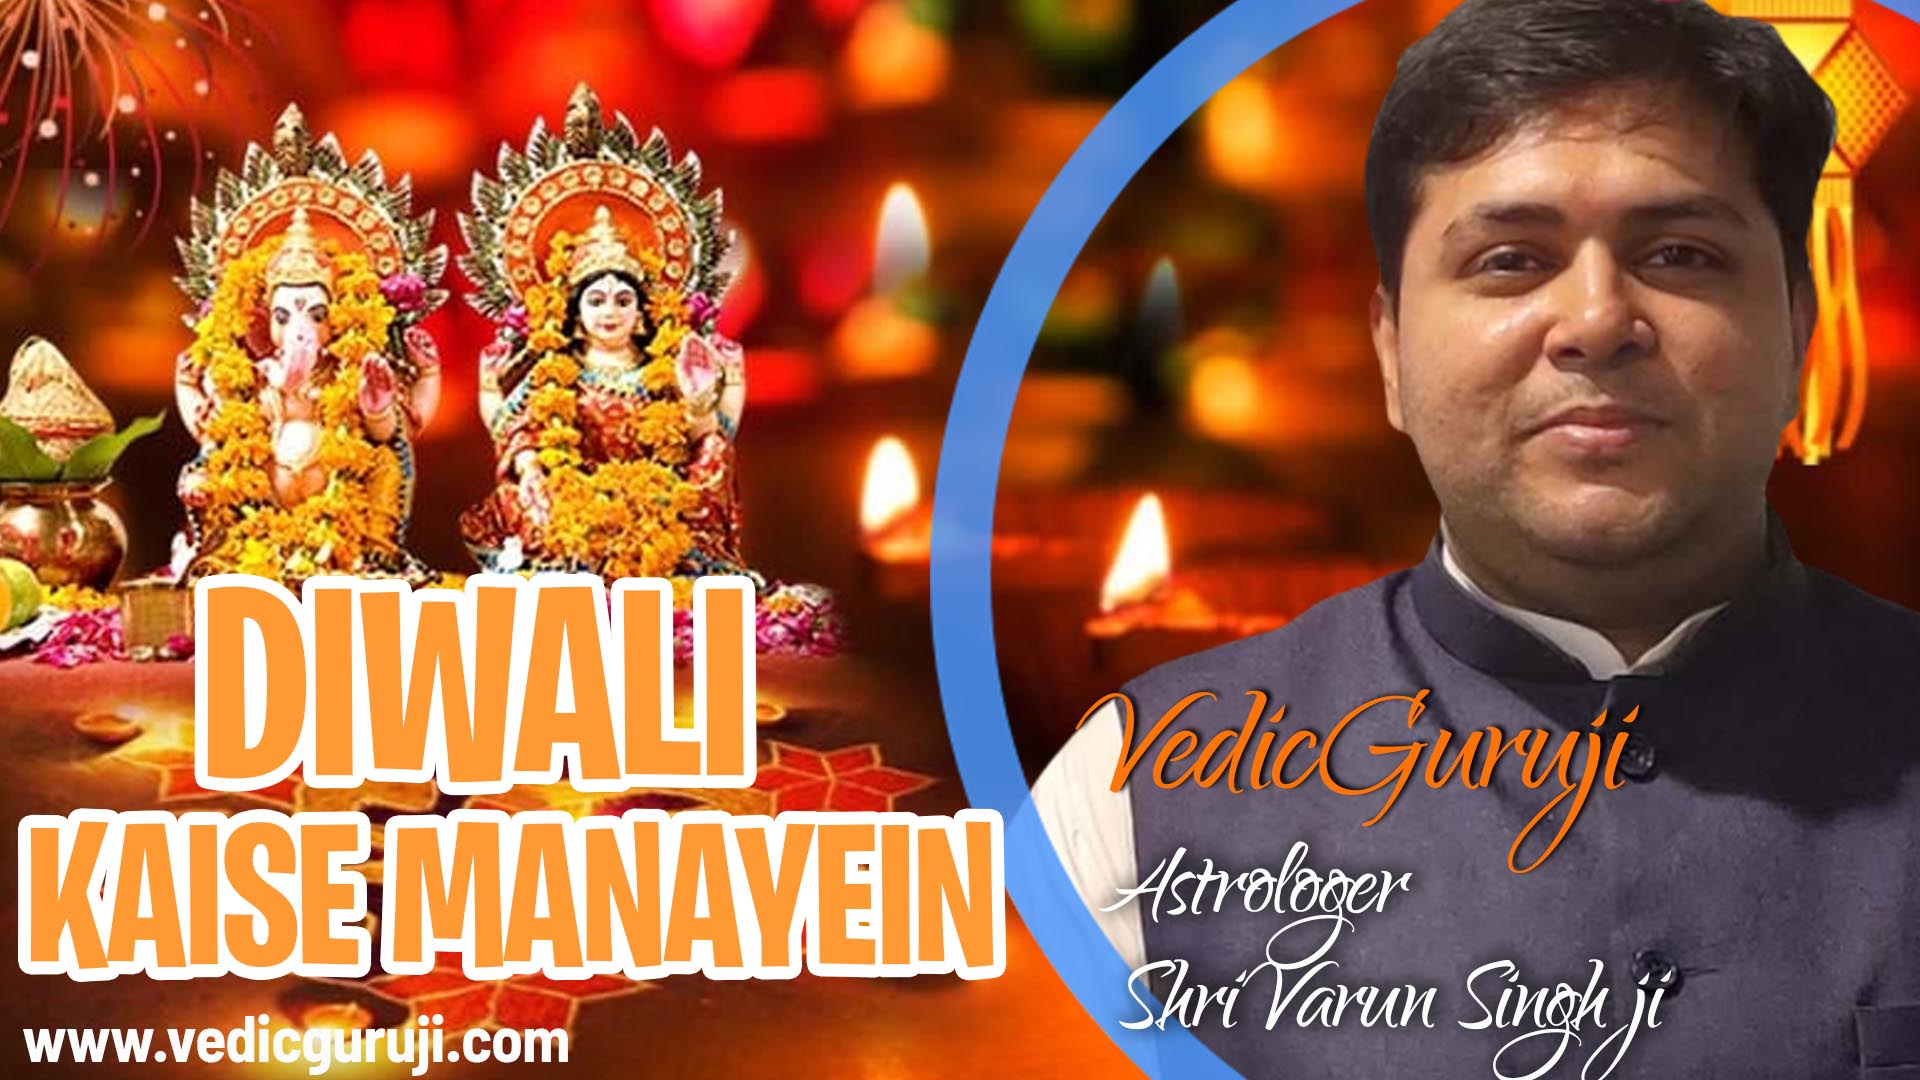 All that we should know about Diwali Puja